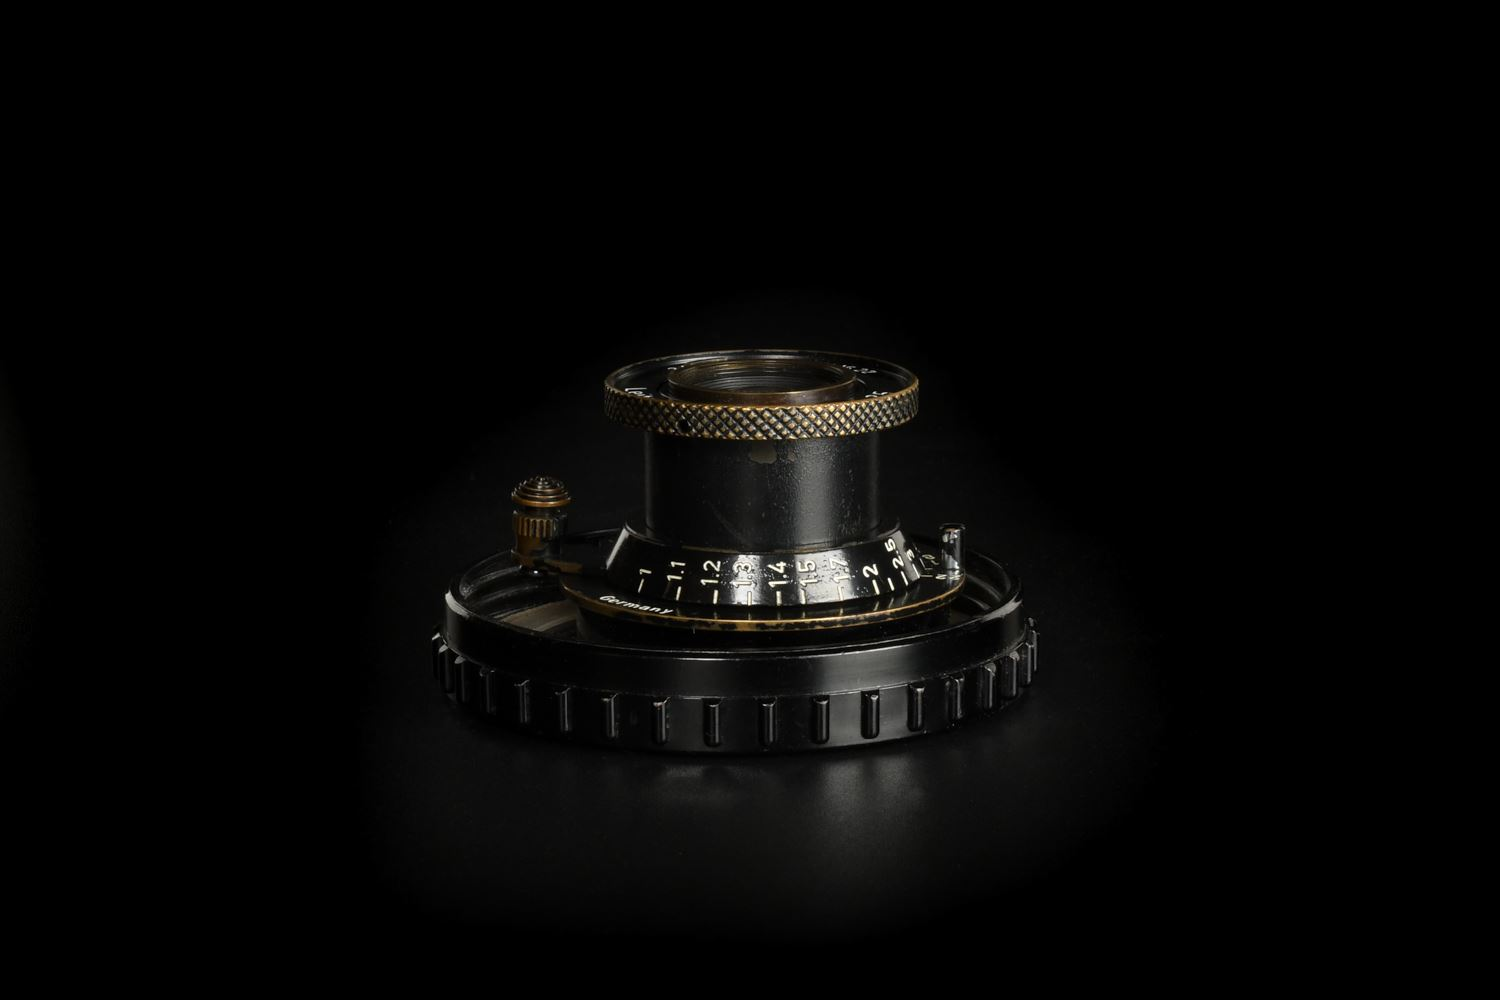 Picture of Leica Elmar 5cm f/3.5 Screw LTM Black Paint Swedish Army